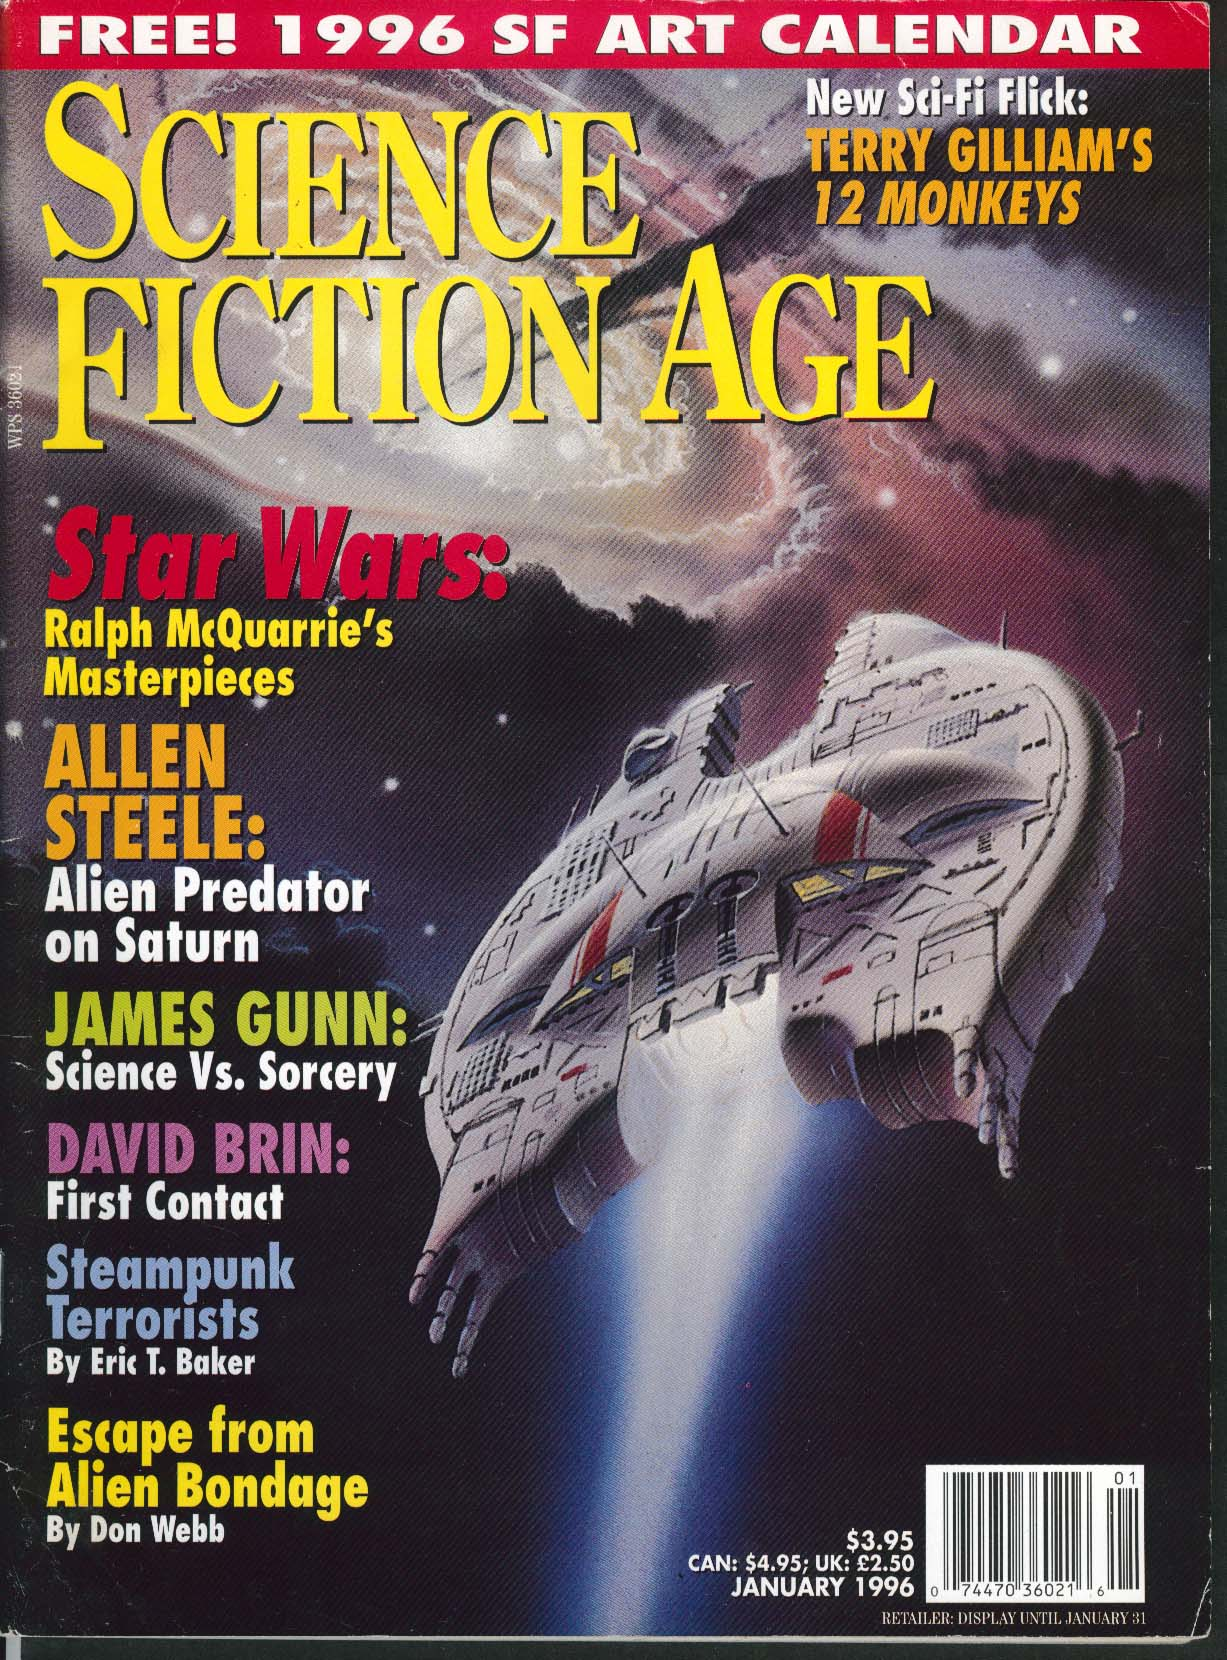 Image for SCIENCE FICTION AGE Ralph McQuarrie Star Wars Terry Gilliam James Gunn ++ 1 1996